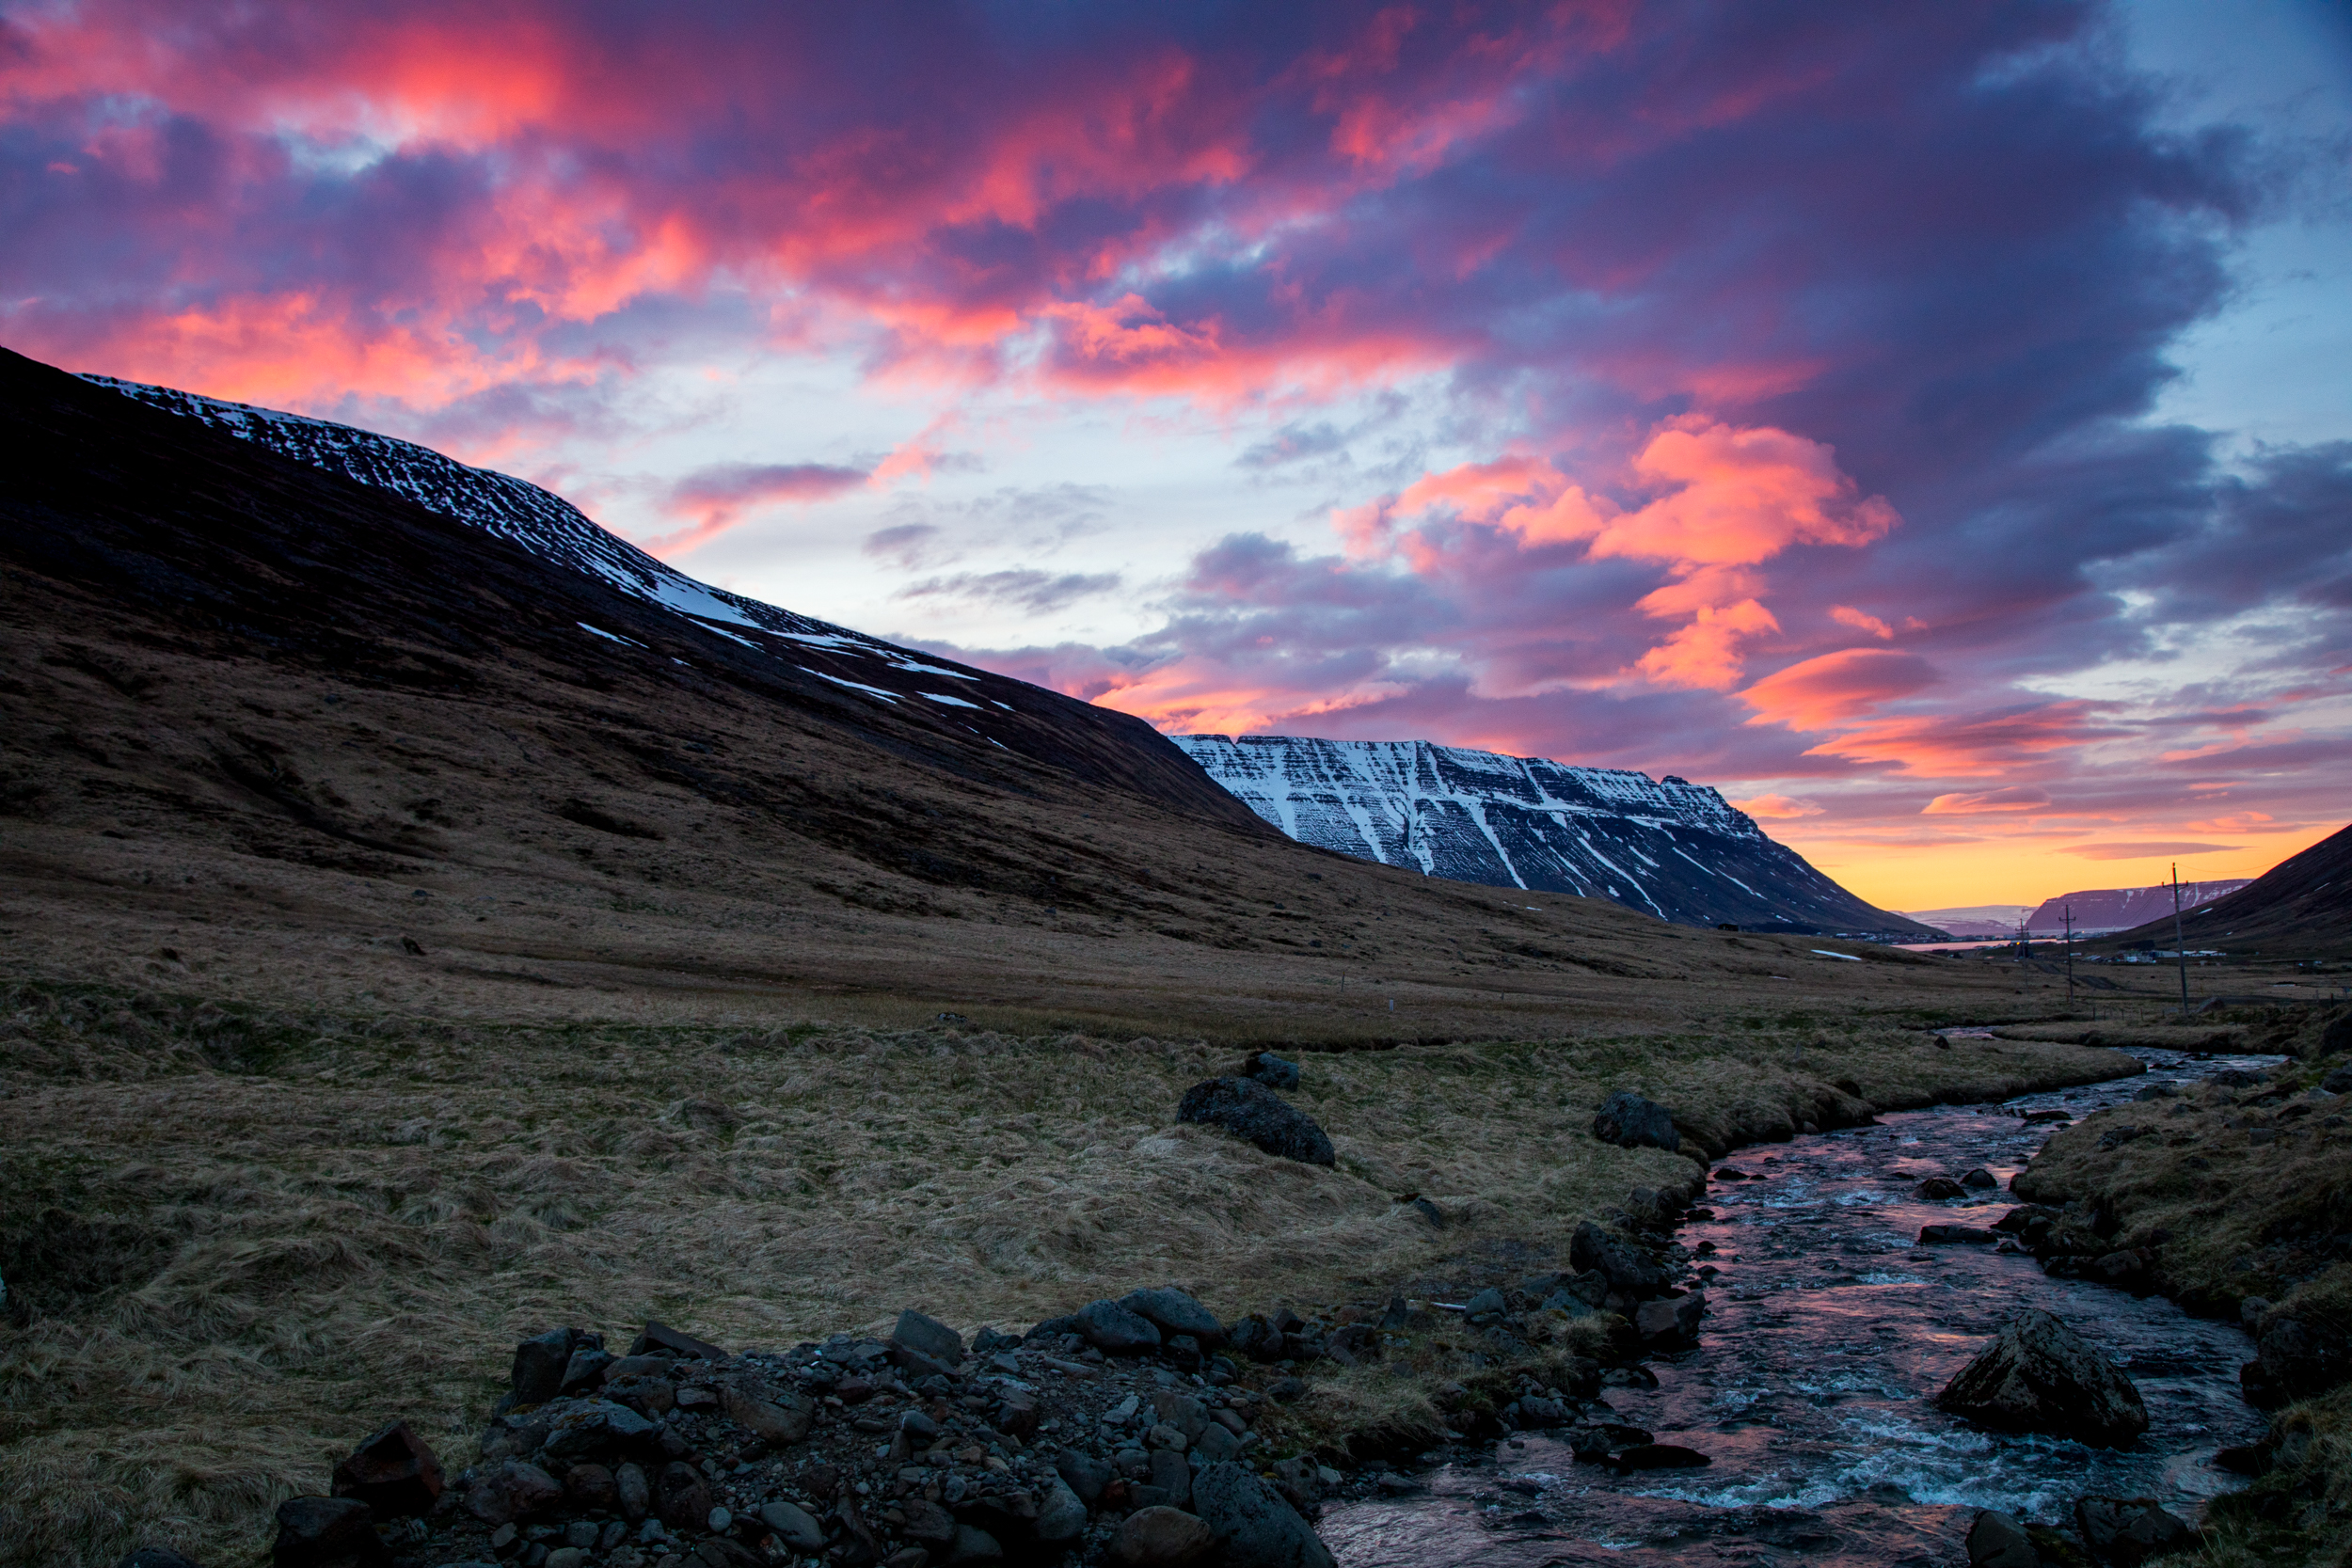 The endless light in Iceland turned out to be the highlight of the trip.